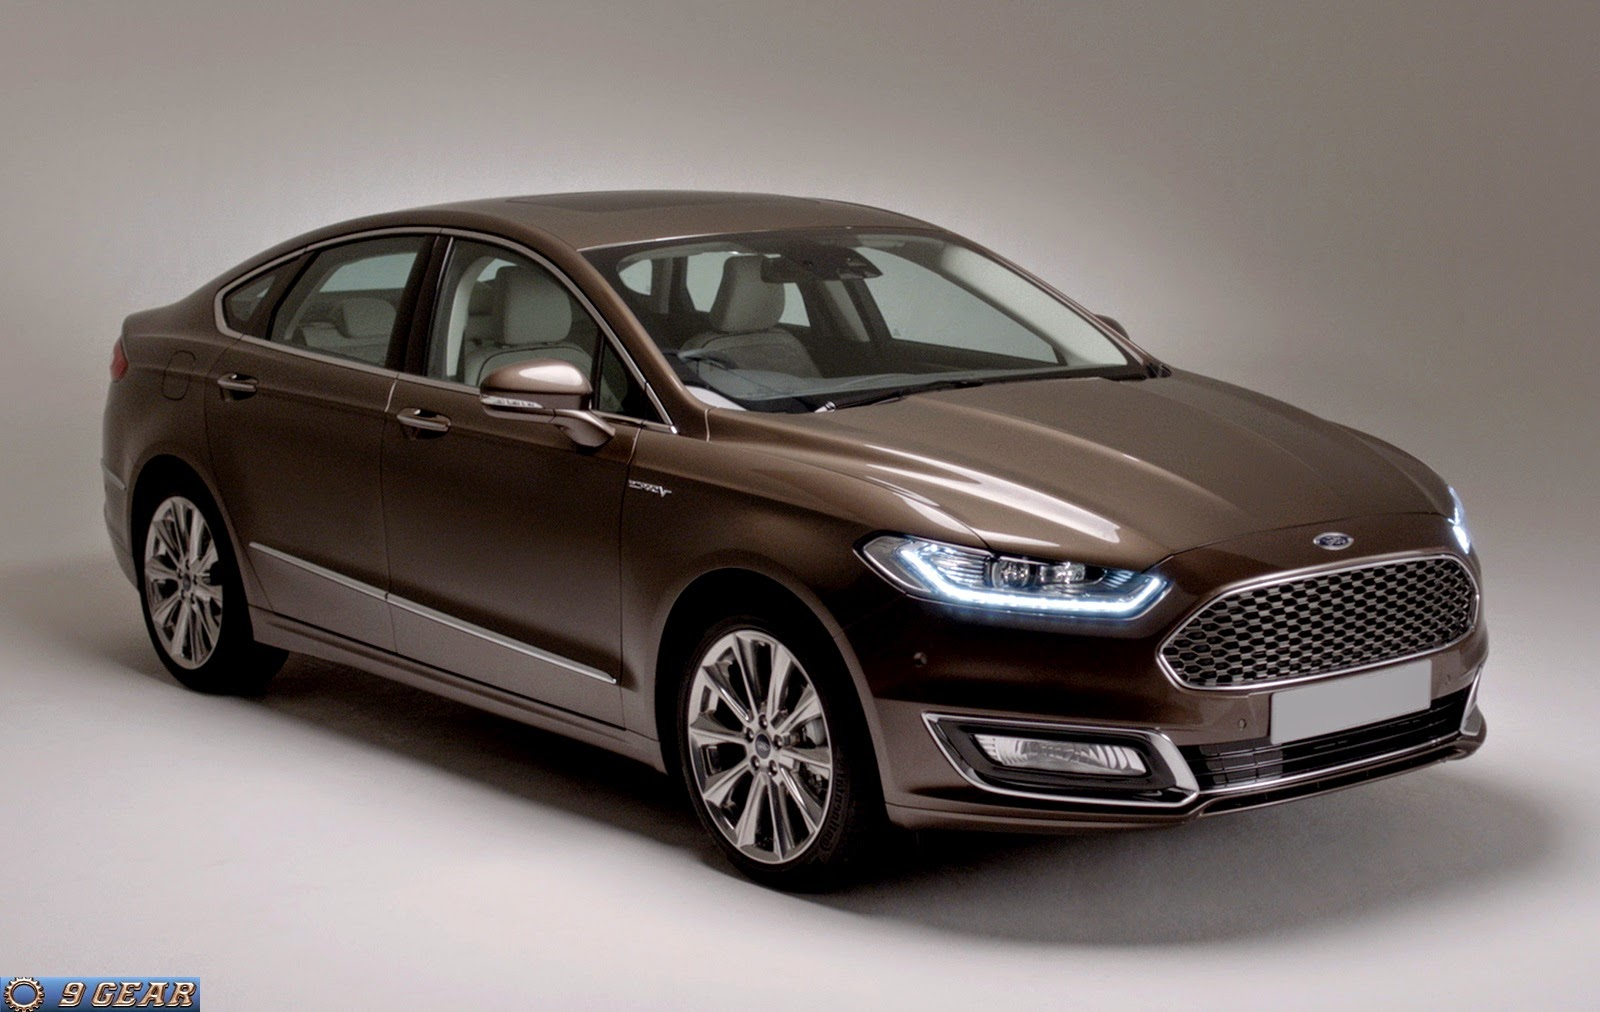 medium resolution of 2016 ford diesel ford mondeo vignale 210 ps bi turbo 2 0 litre